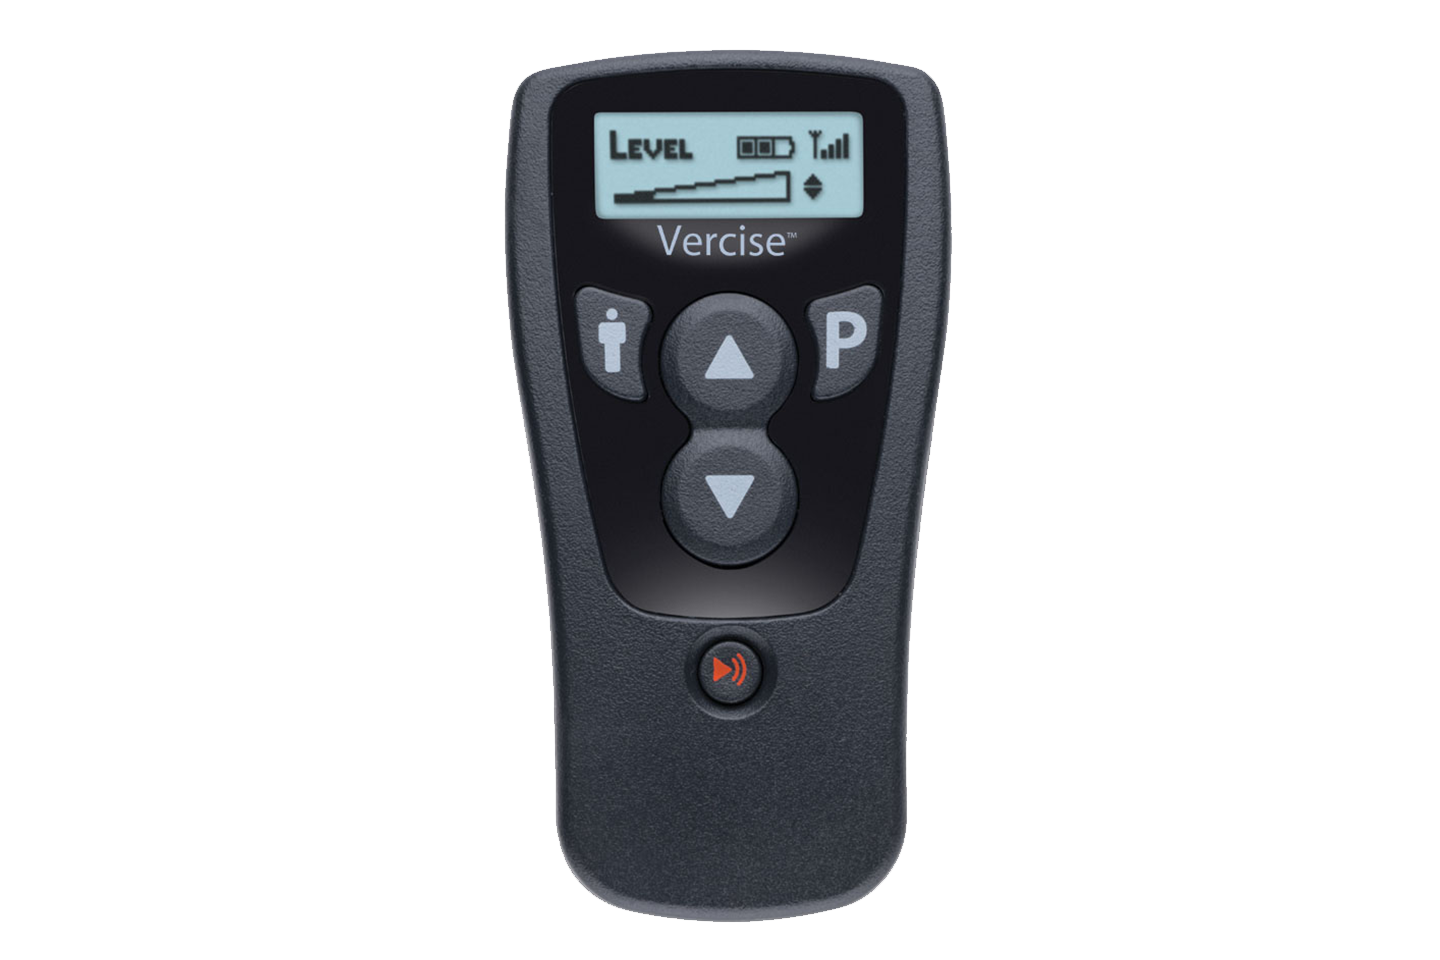 vercise_remote_1440x960_eu.png